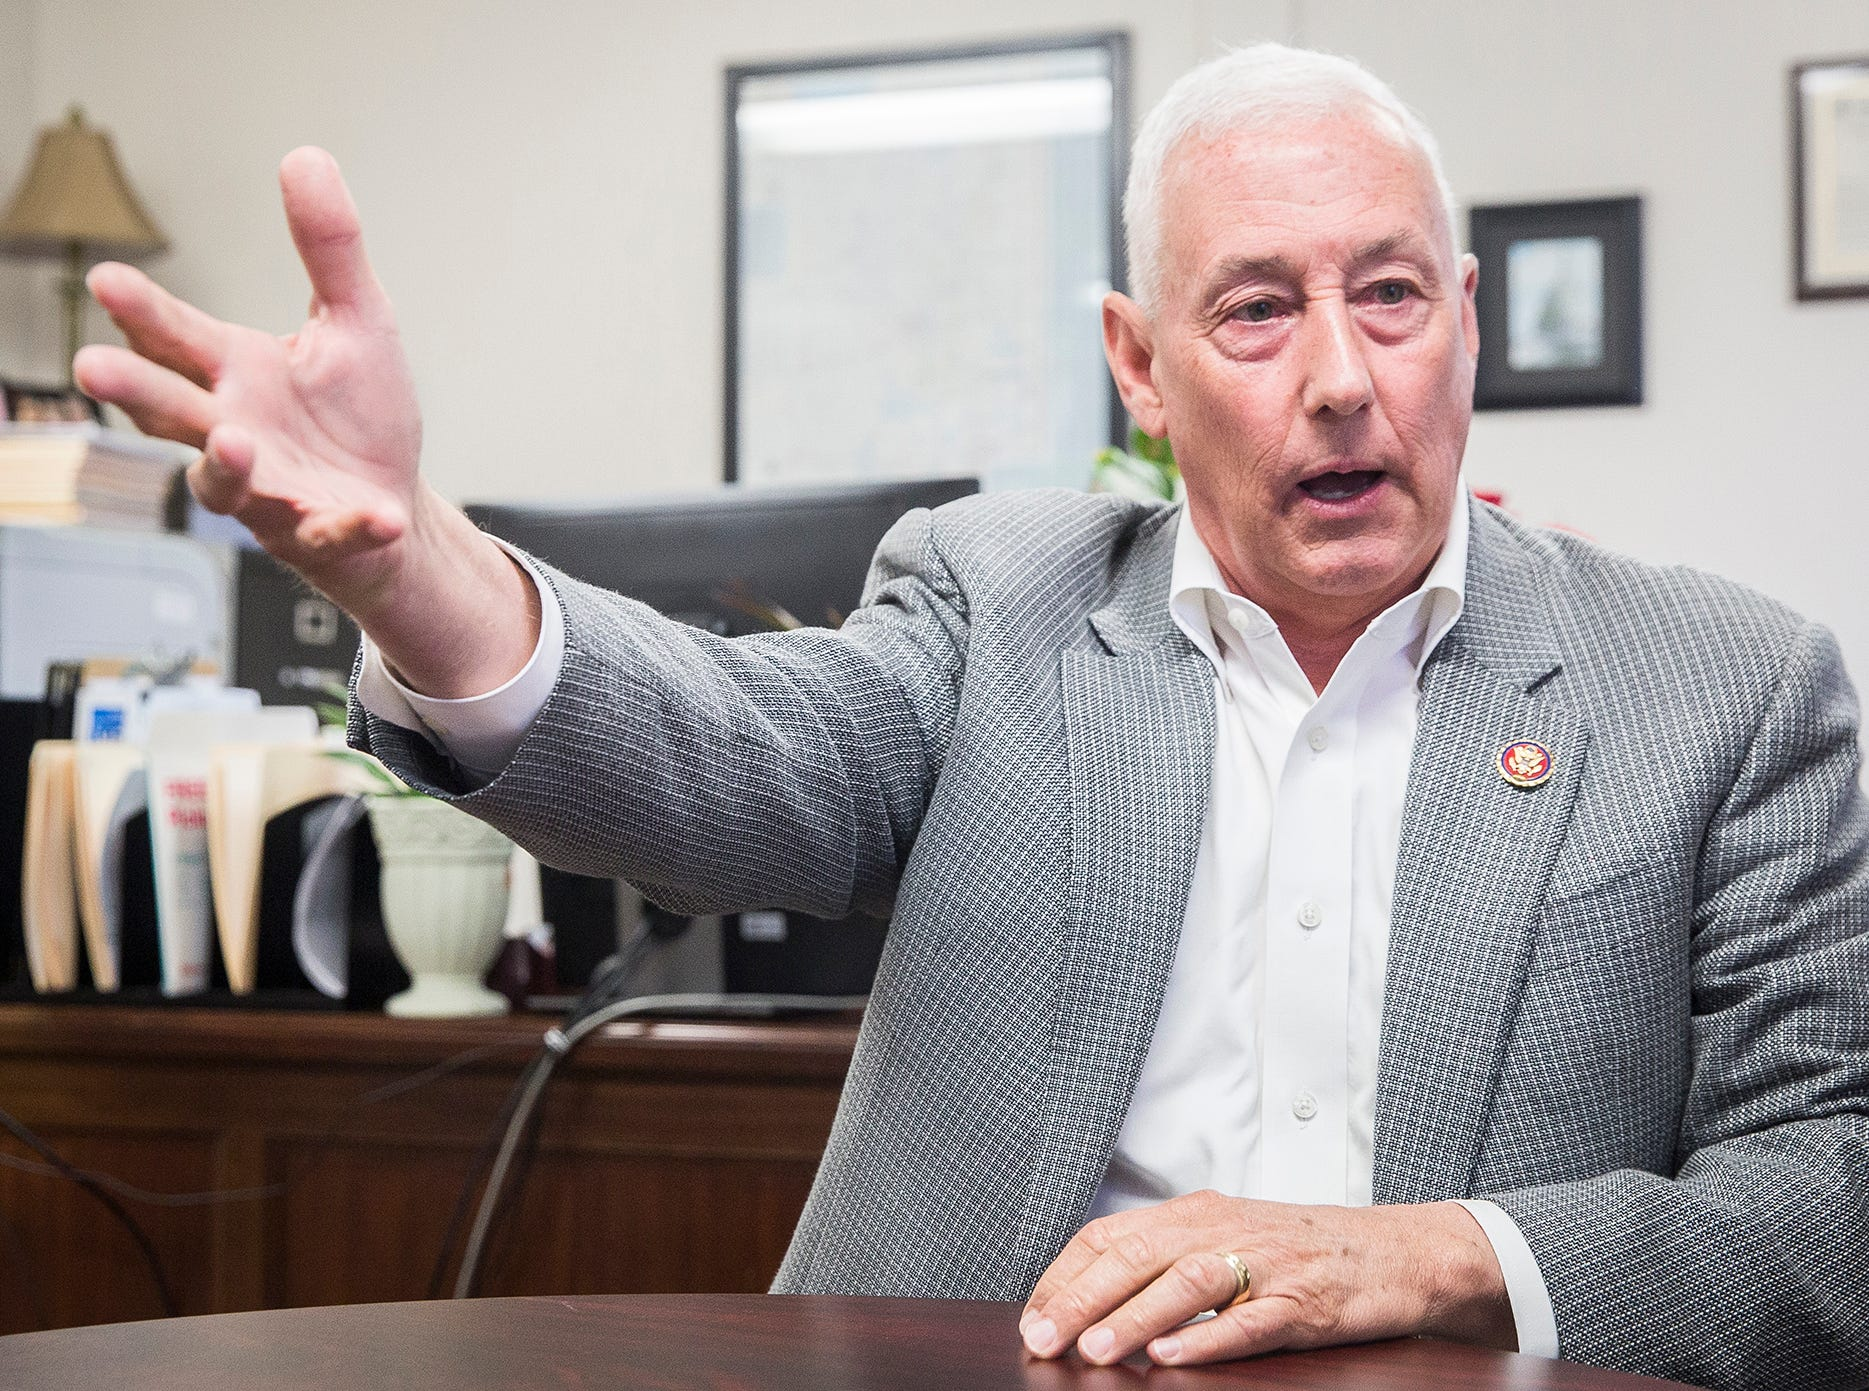 Rep. Greg Pence visited Muncie Thursday afternoon to speak with constituents during an open house for his new Muncie office location on Ethel Avenue.